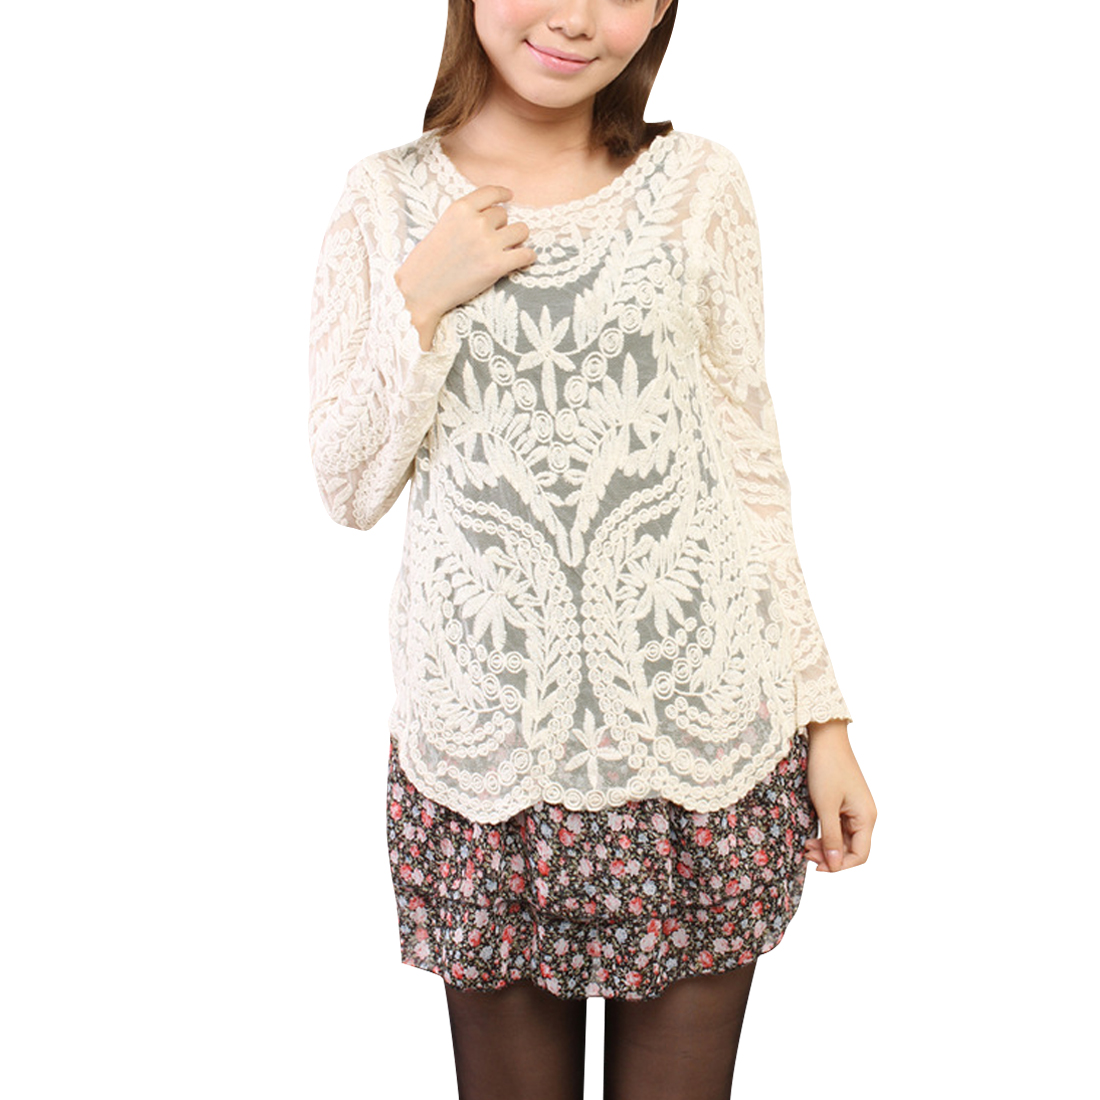 Women Round Neck Long Sleeve Lace Crochet Semi Sheer Top Blouse Beige S